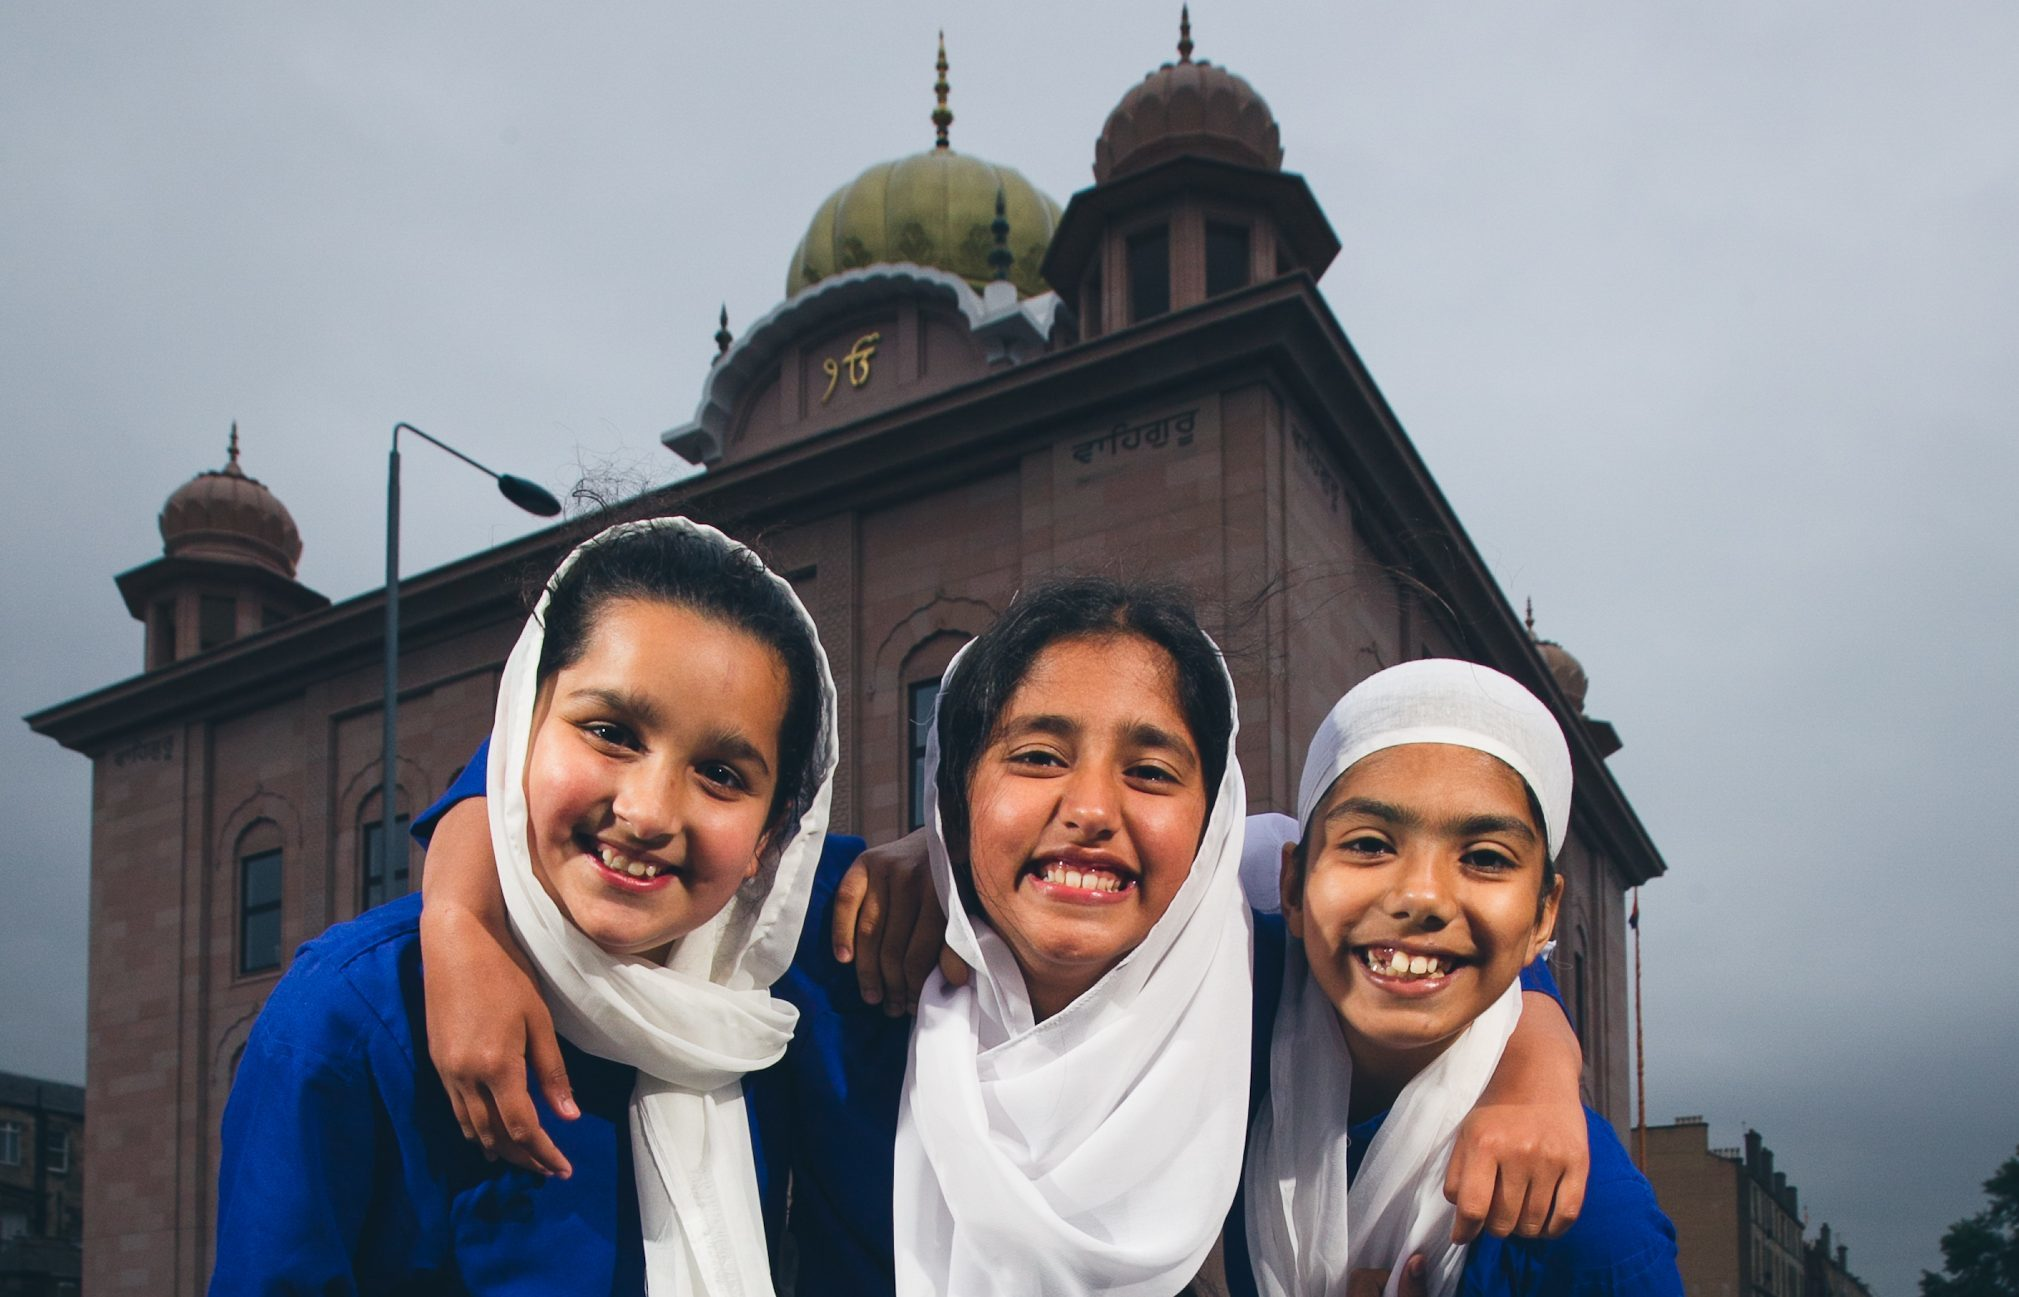 Outside the Gurdwara, 3 young girls wearing traditional Khalsa dress, (L-R): Saloni Kaur, 11, Dilraj Kaur, 10, Simmi Kaur, 10 (Andrew Cawley / DC Thomson)